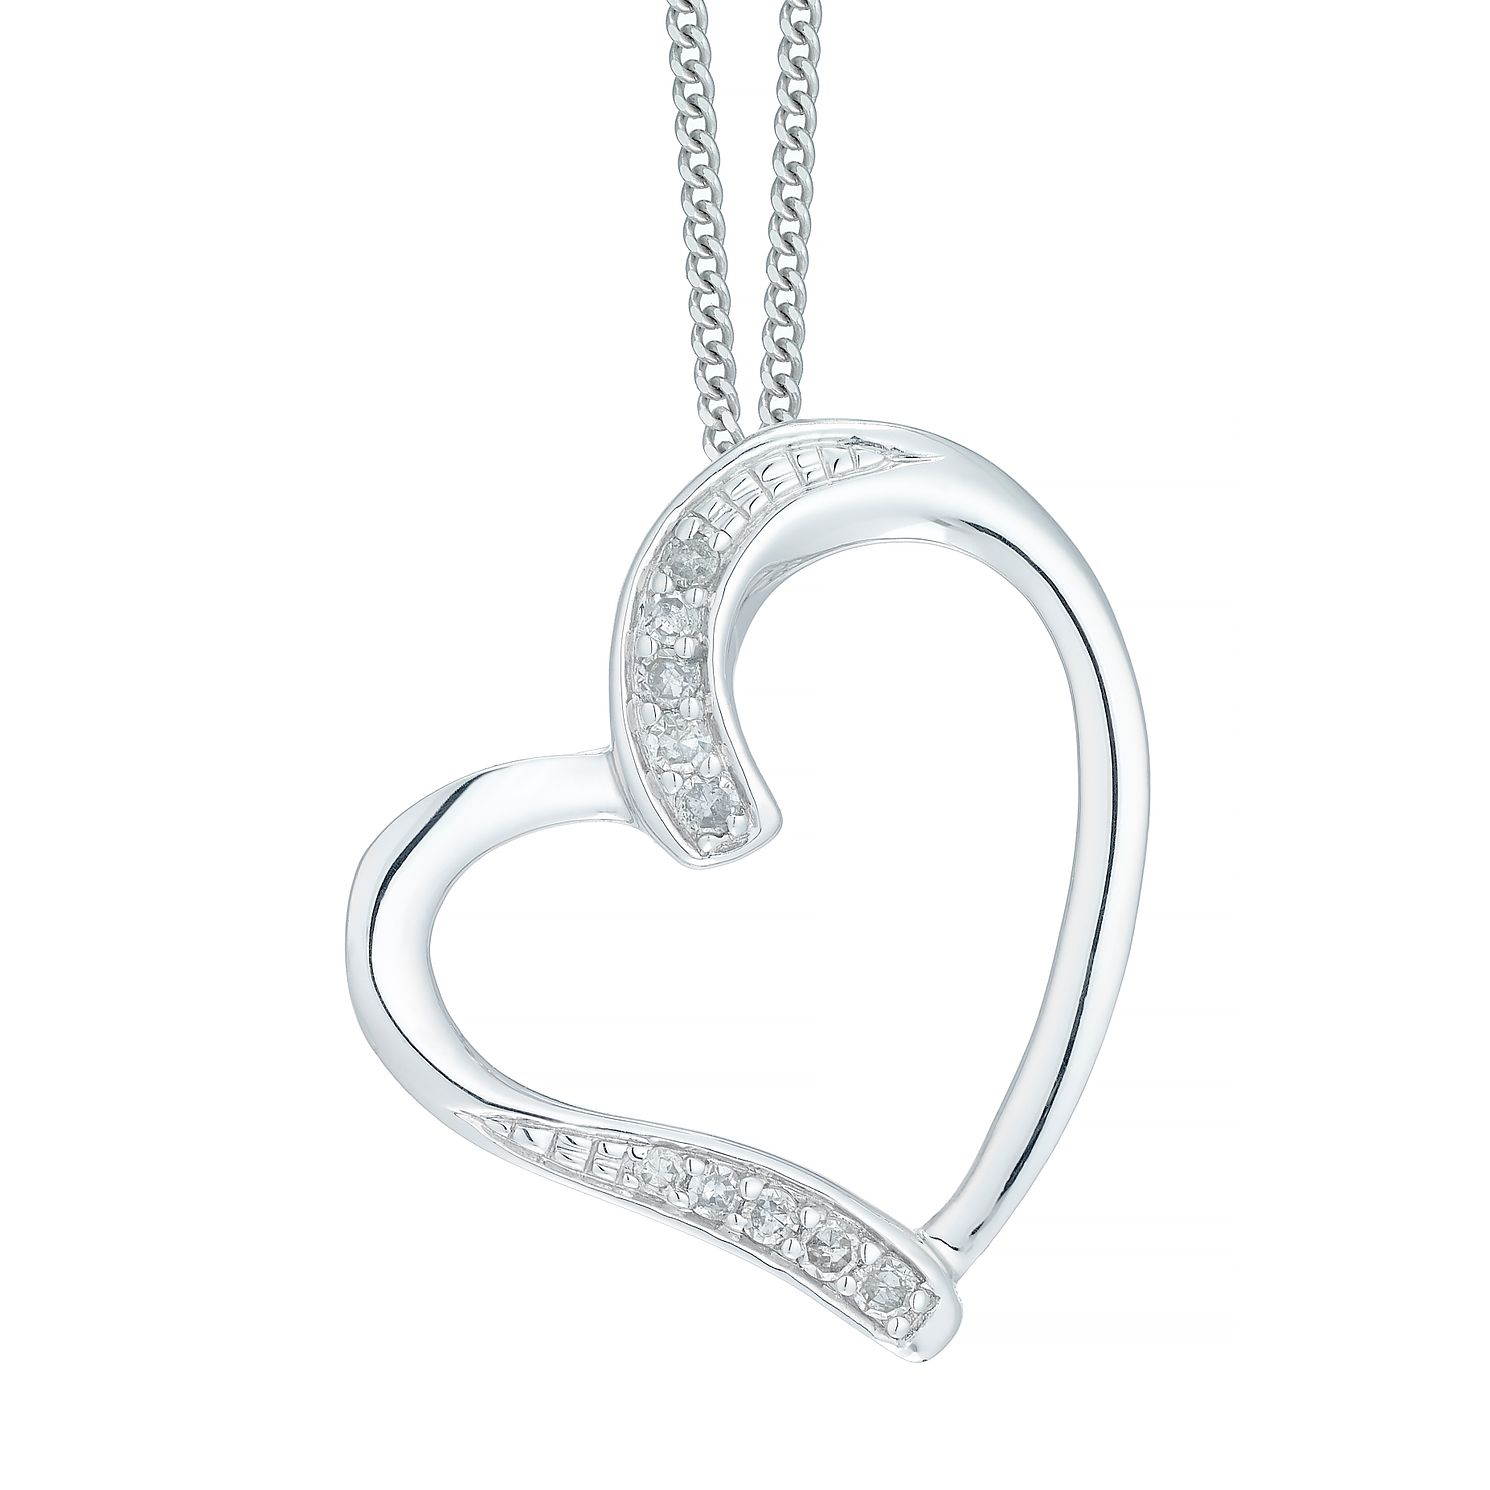 heart us main pdpzoom en fossil products necklace aemresponsive sku